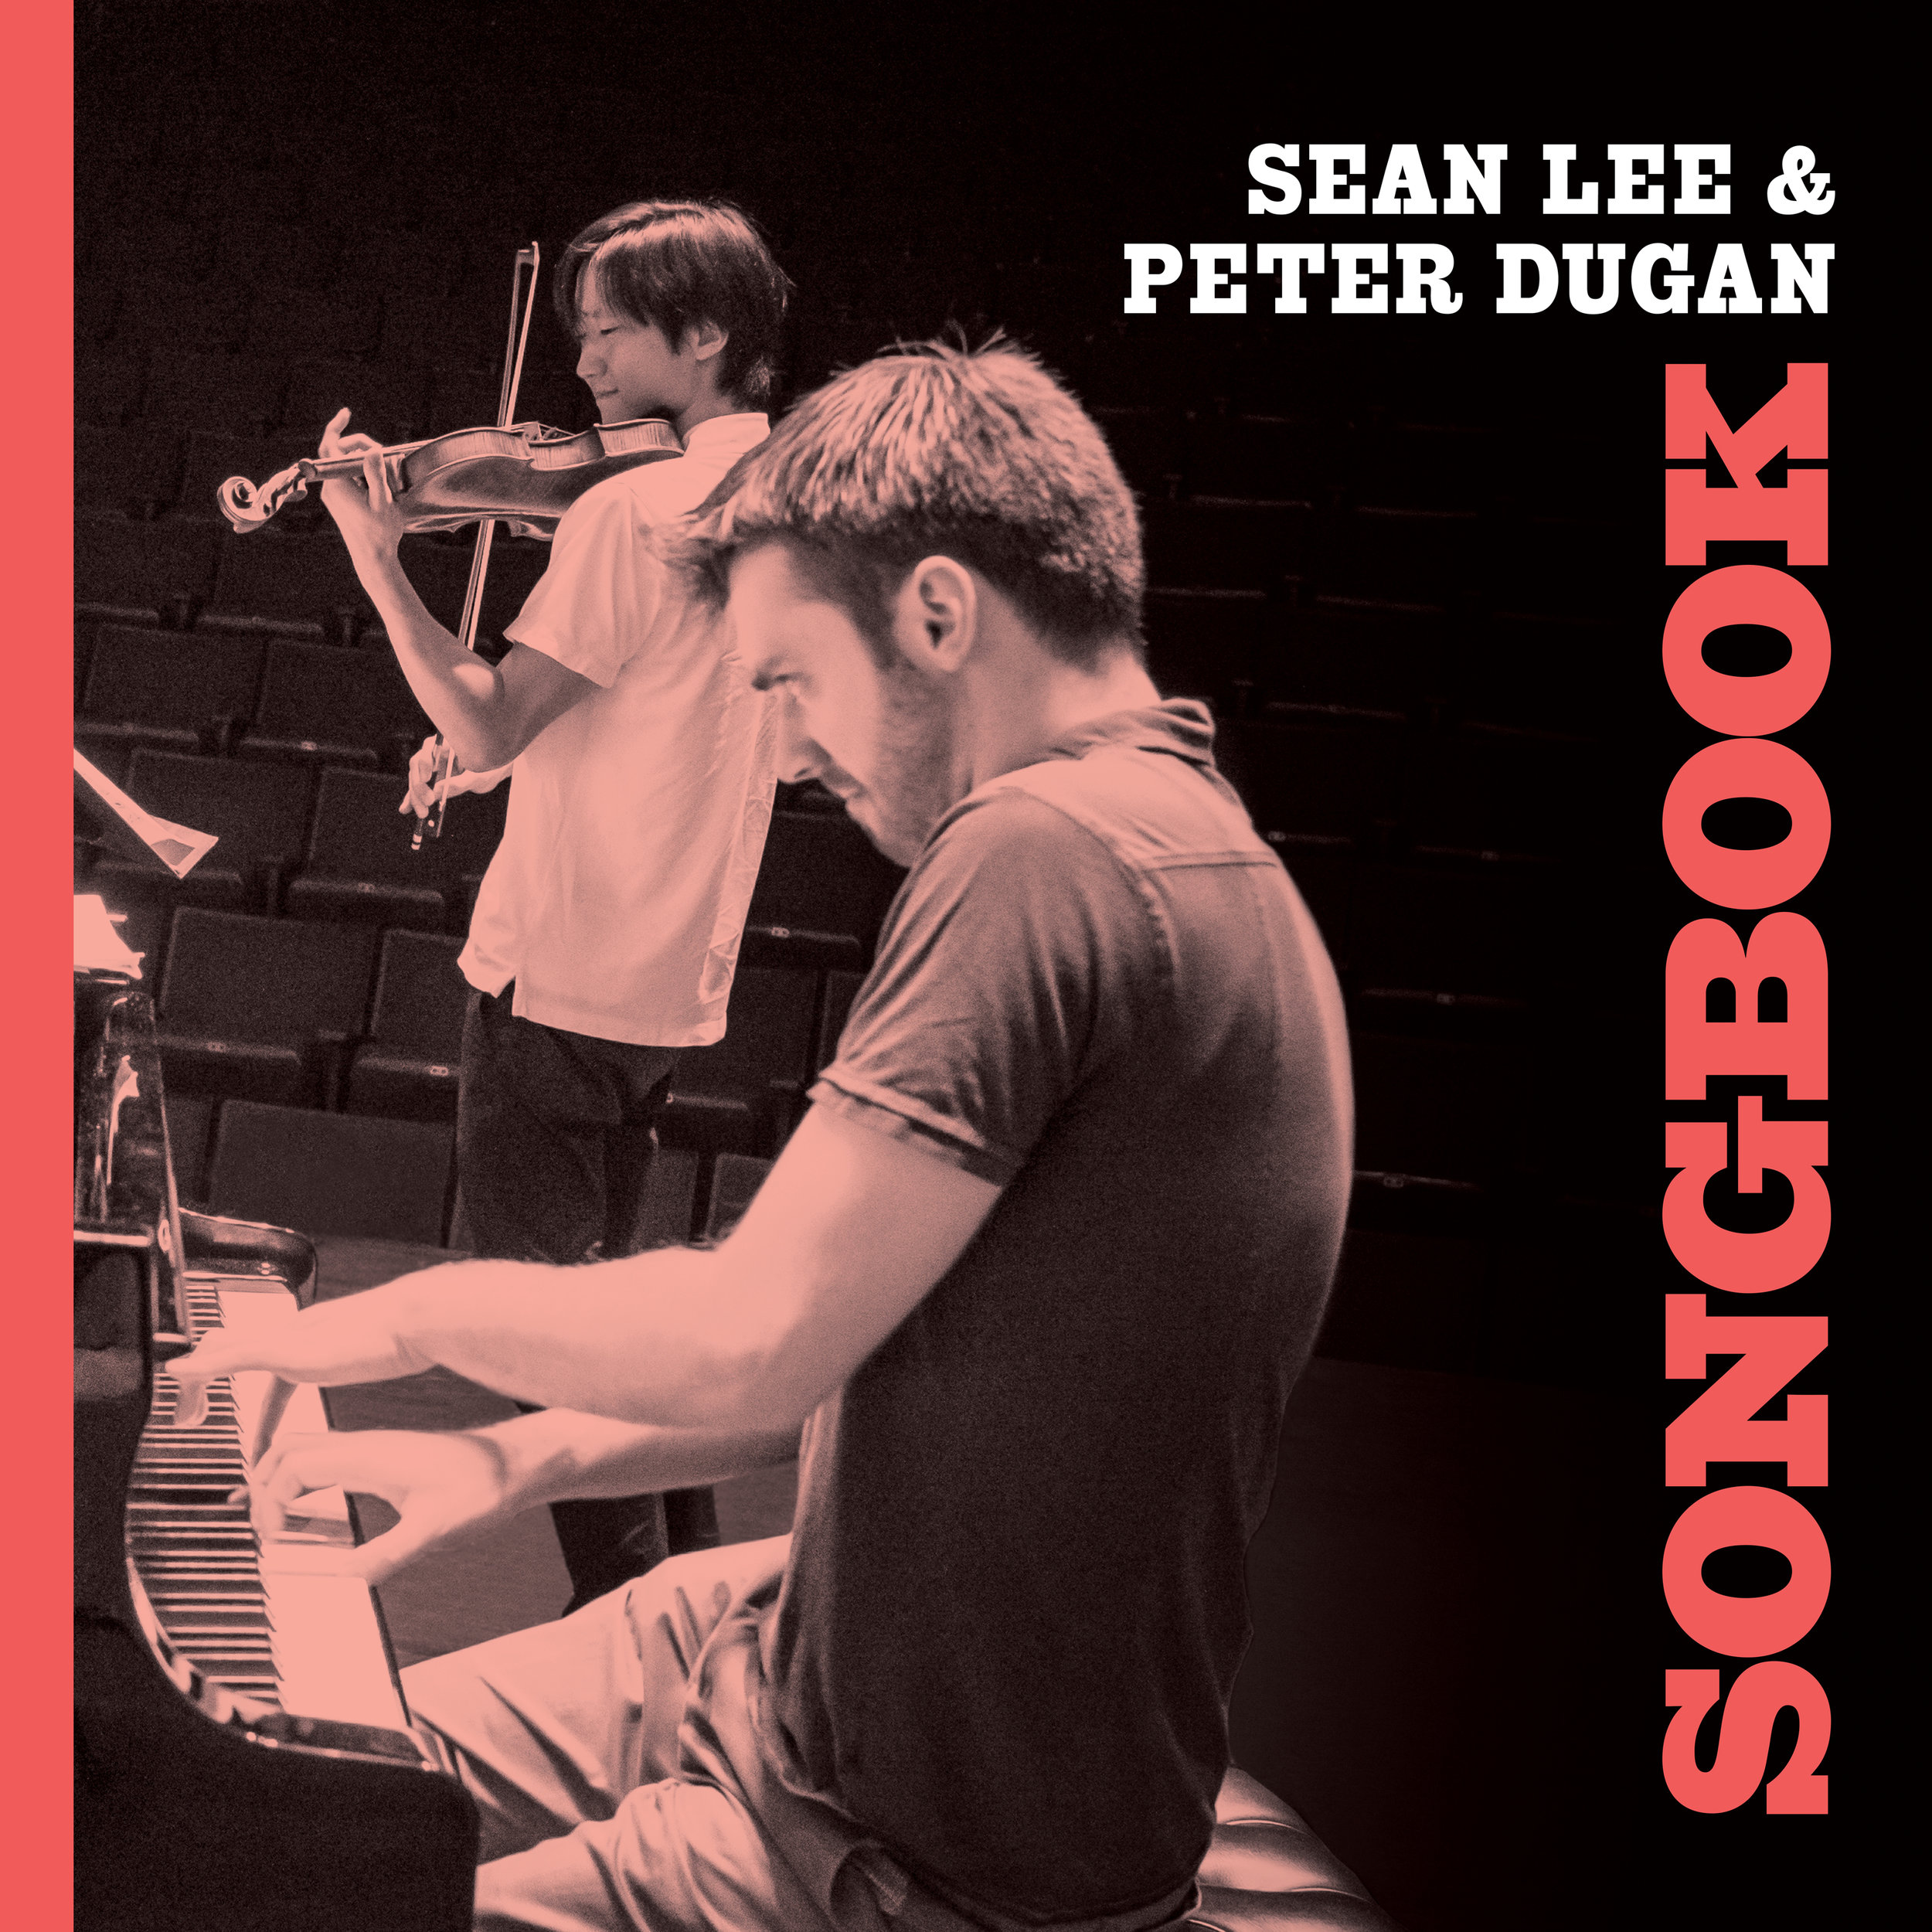 SL1017-Songbook-FrontCover-Final-3000px.jpg